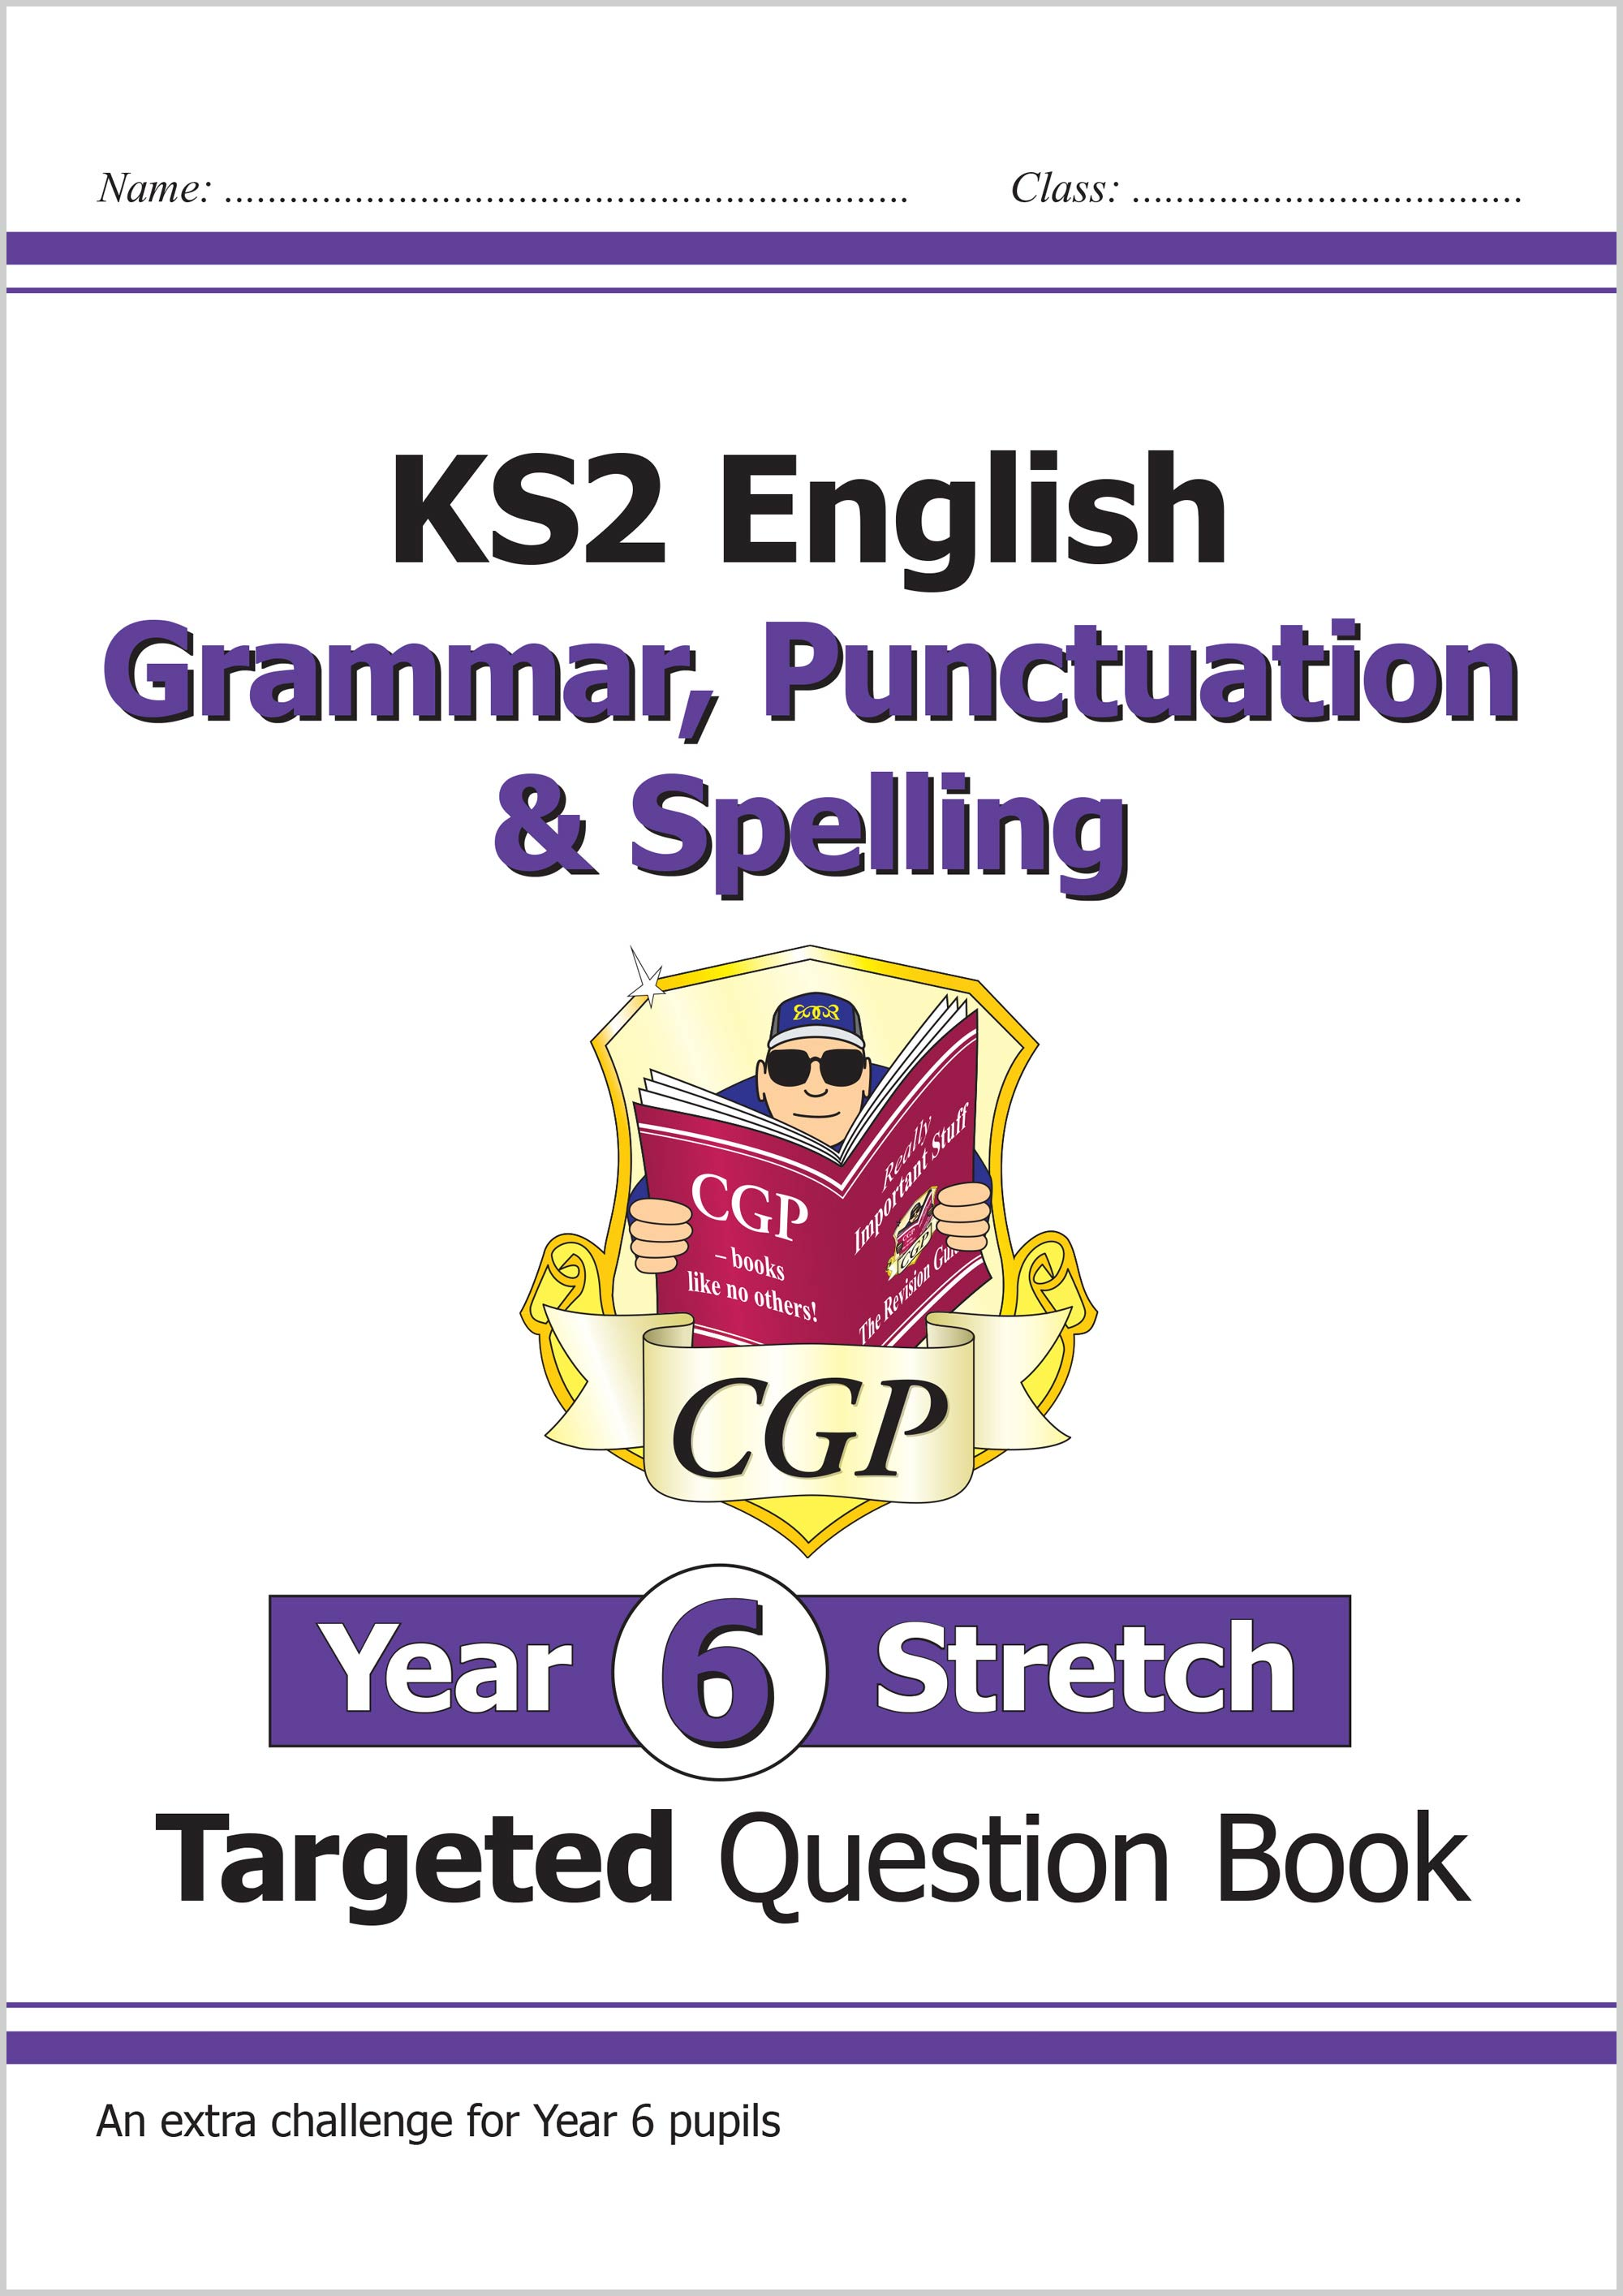 EG6HW21 - New KS2 English Targeted Question Book: Challenging Grammar, Punctuation & Spelling - Year